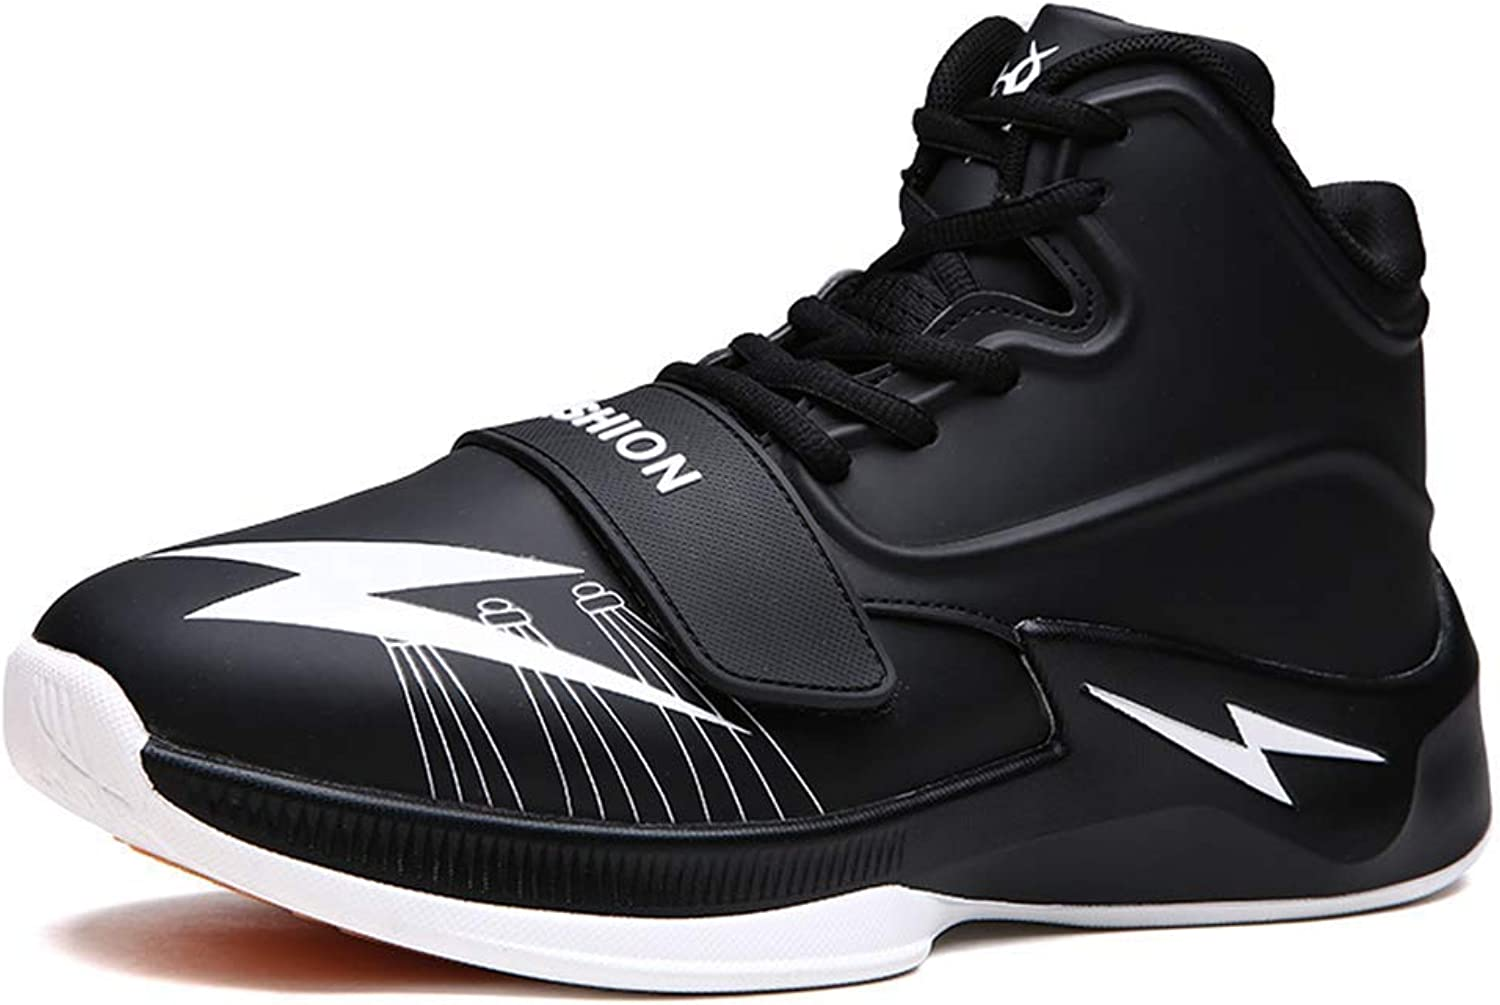 ZHRUI Men Basketball shoes Breathable Outdoor Athletic Training Cushioning Non-Slip Ankle Sport Boots Male Sneakers (color   Black, Size   10=45 EU)